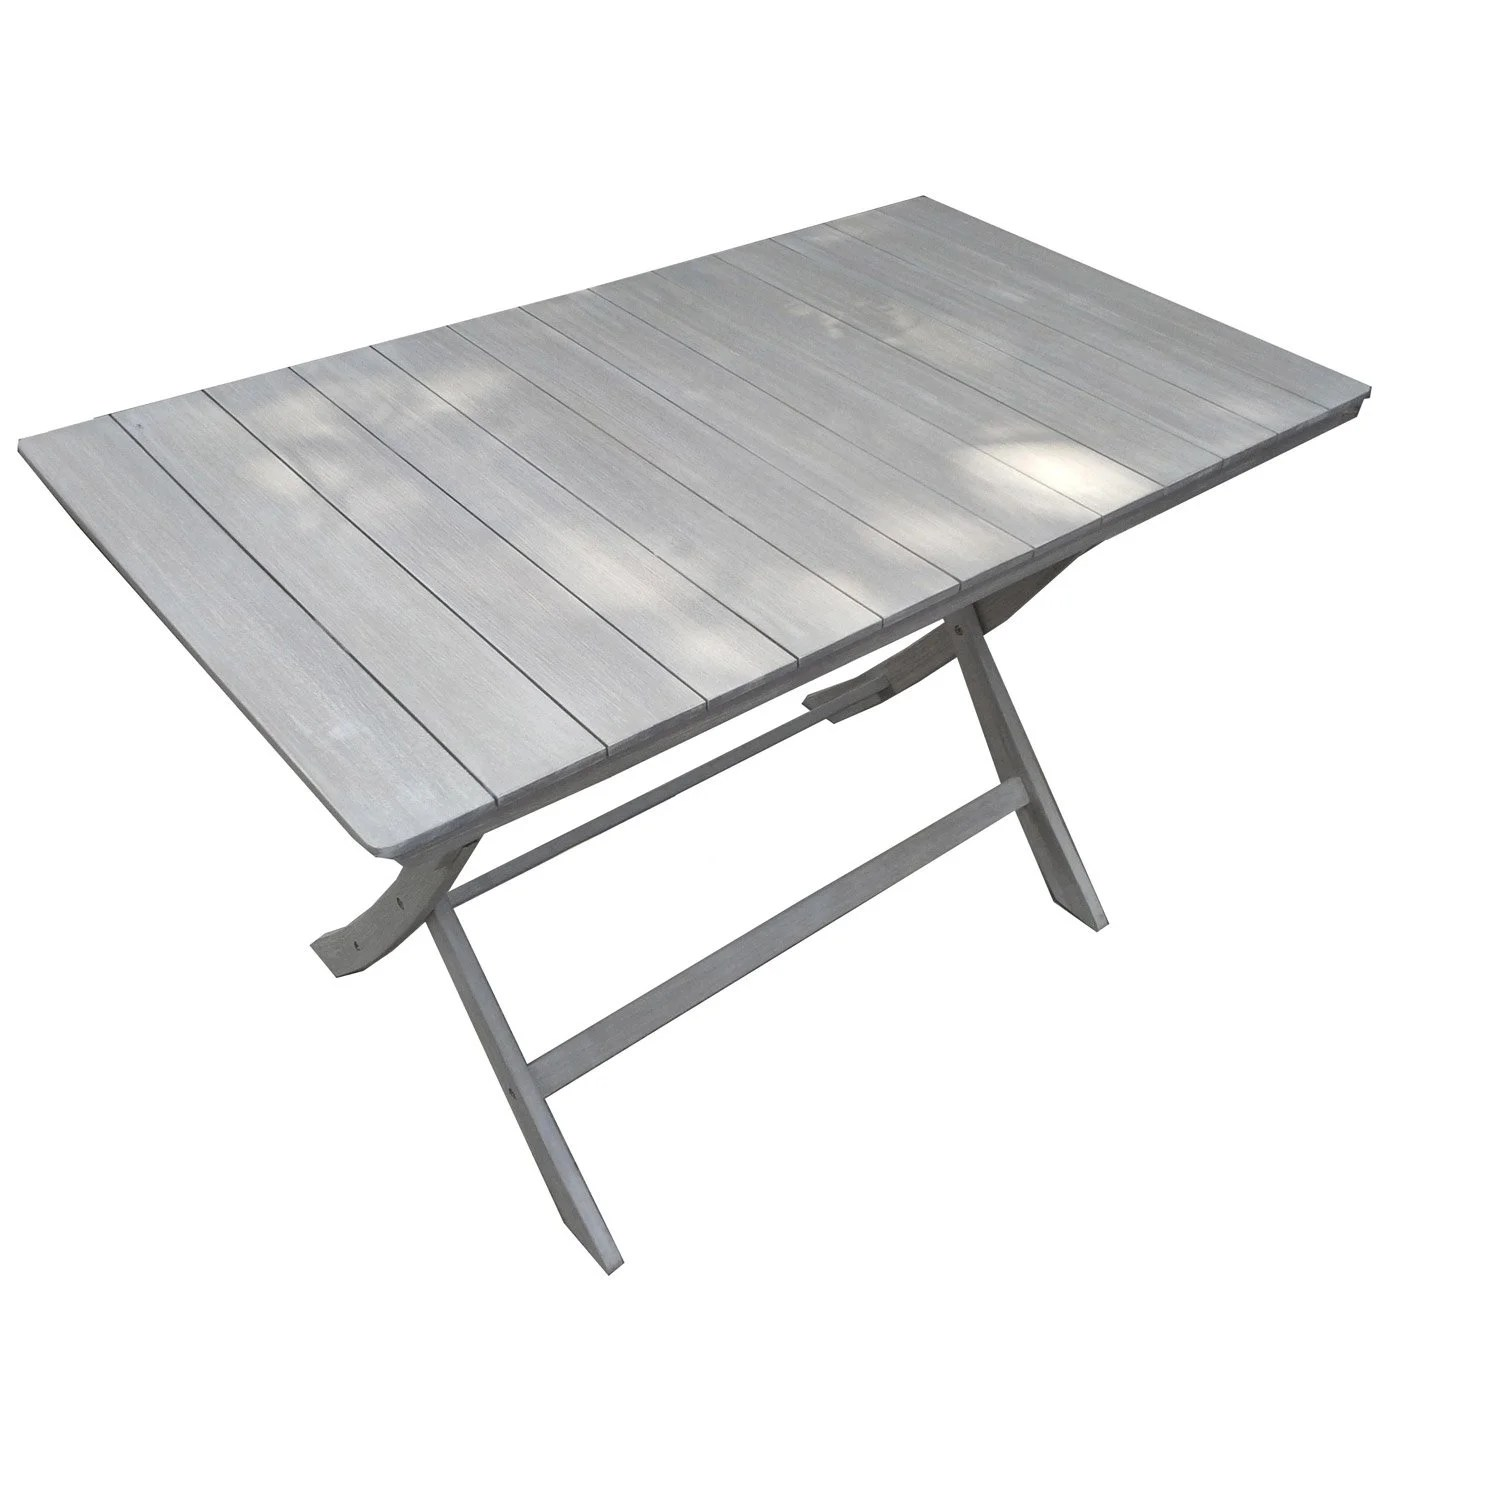 Table Fer Jardin Table De Jardin Naterial Portofino Rectangulaire Gris 4